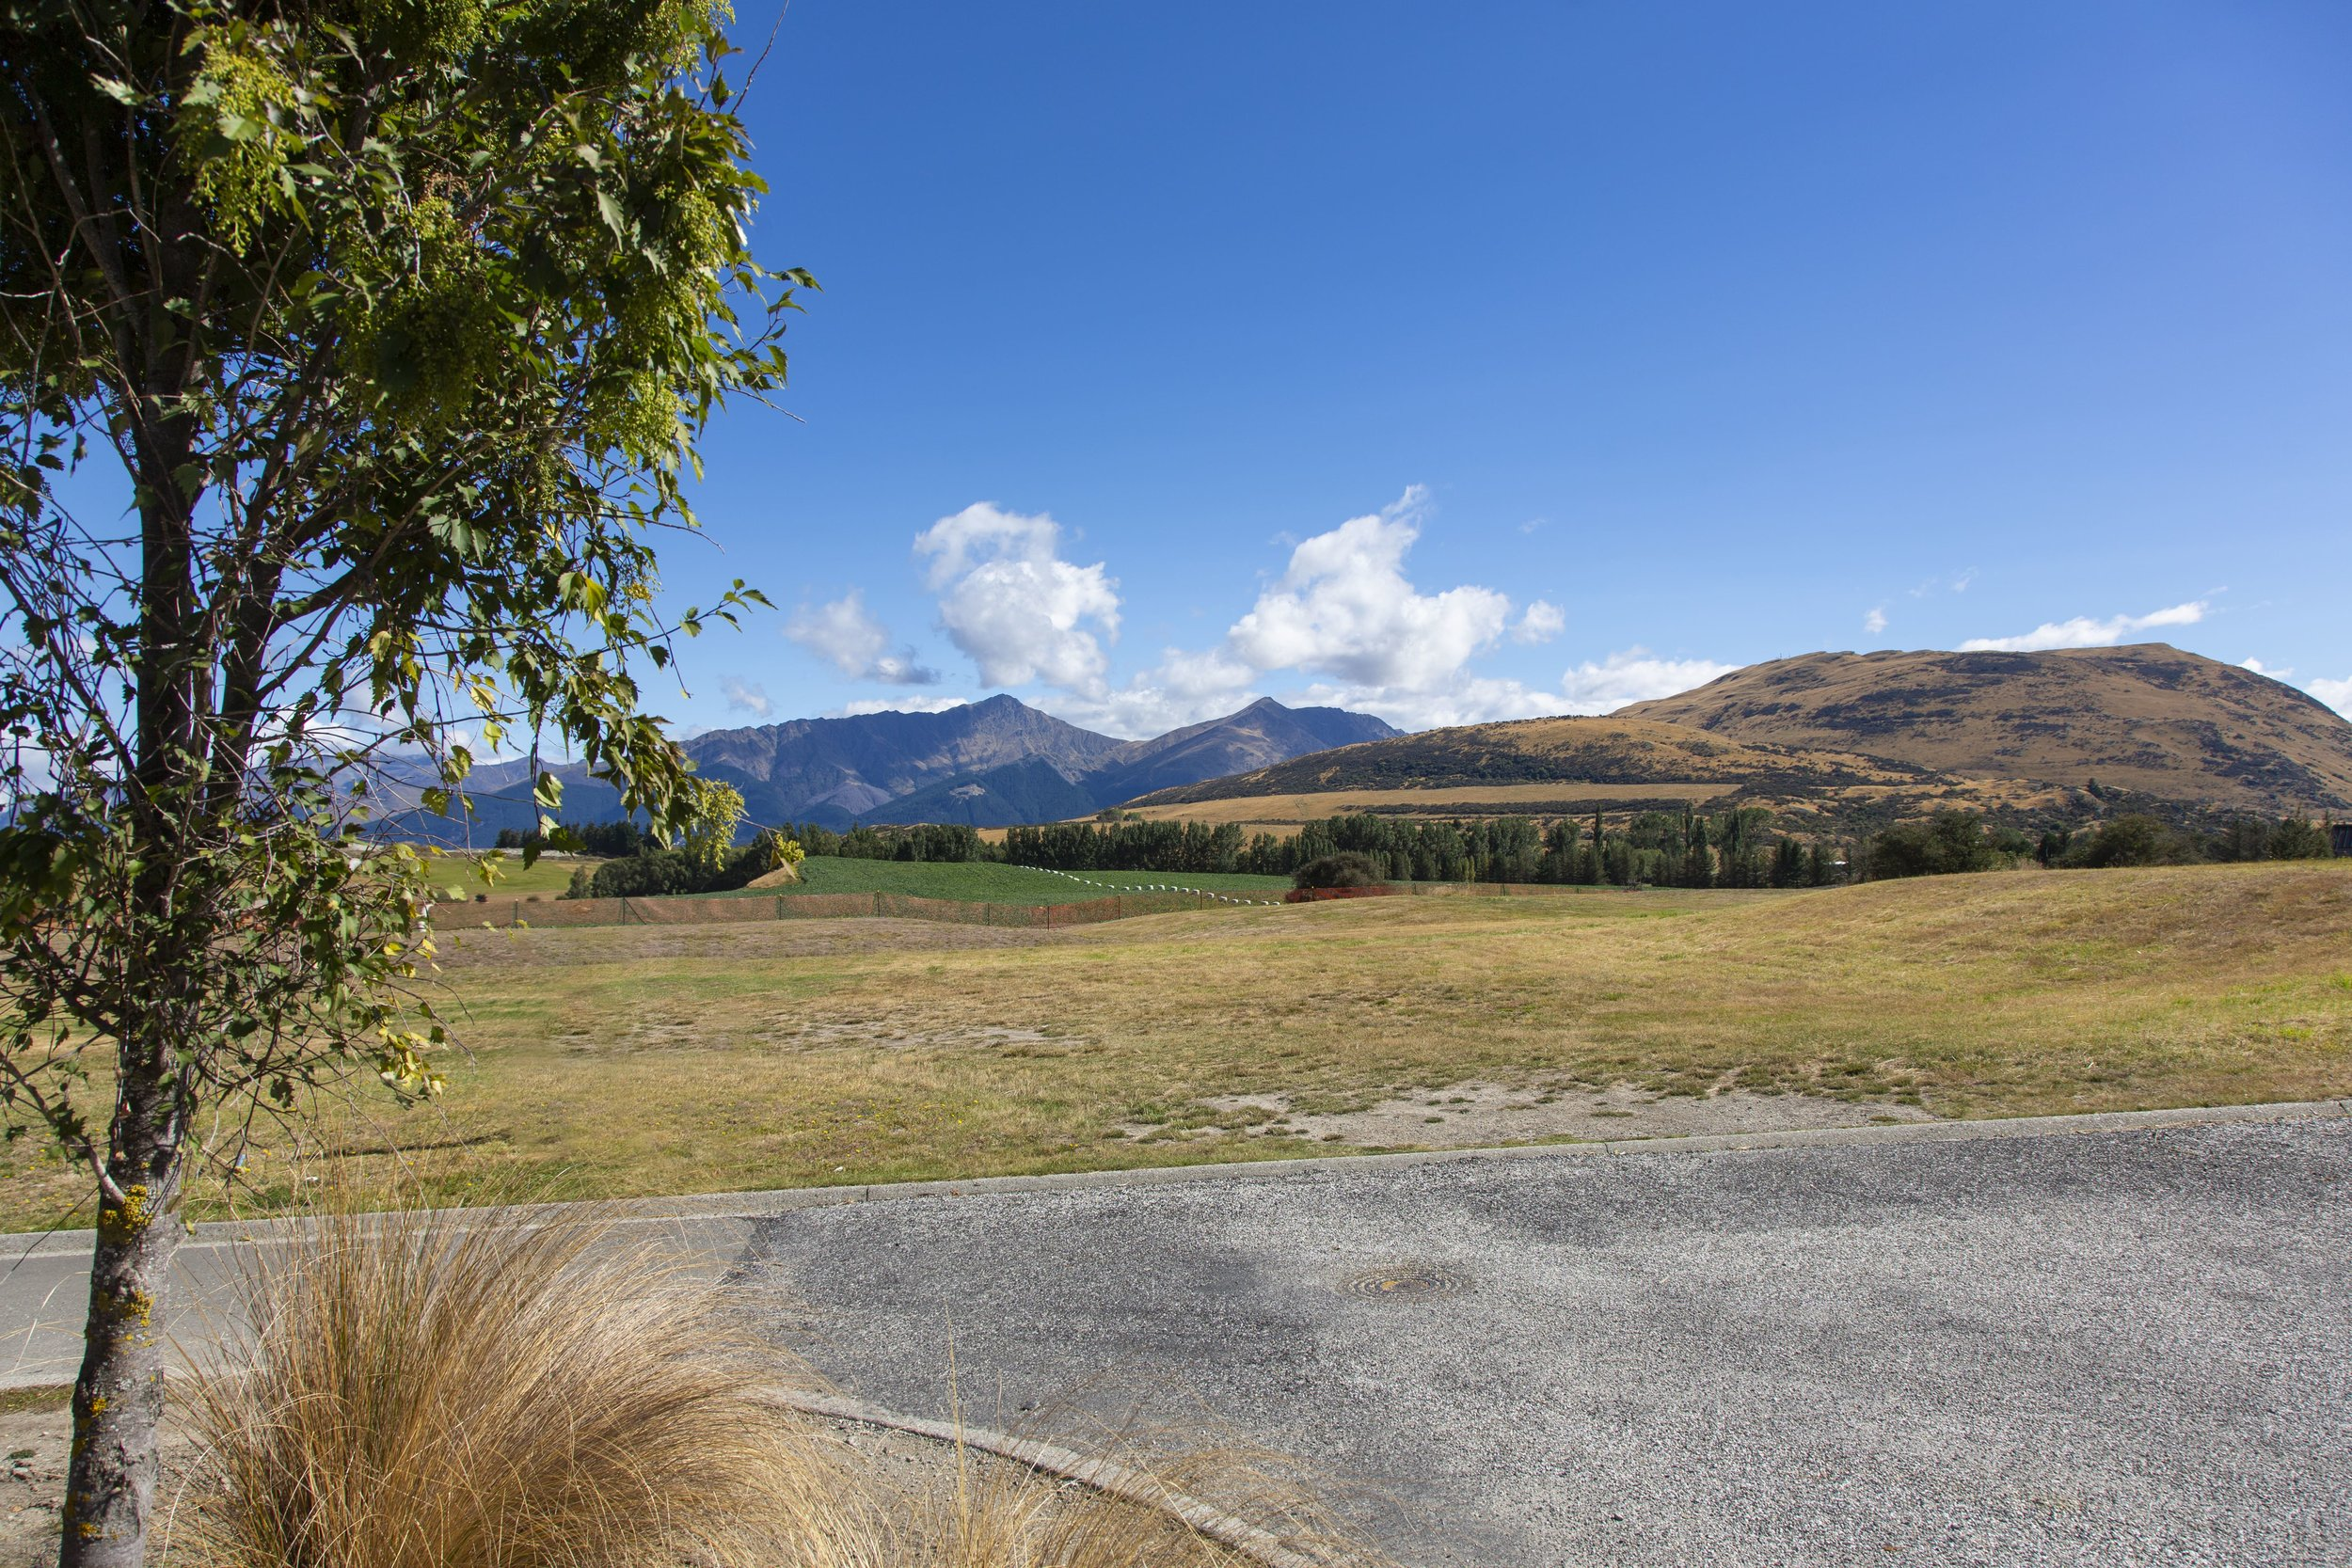 7_Torridon_Court_Jacks_Point_003-min.jpg